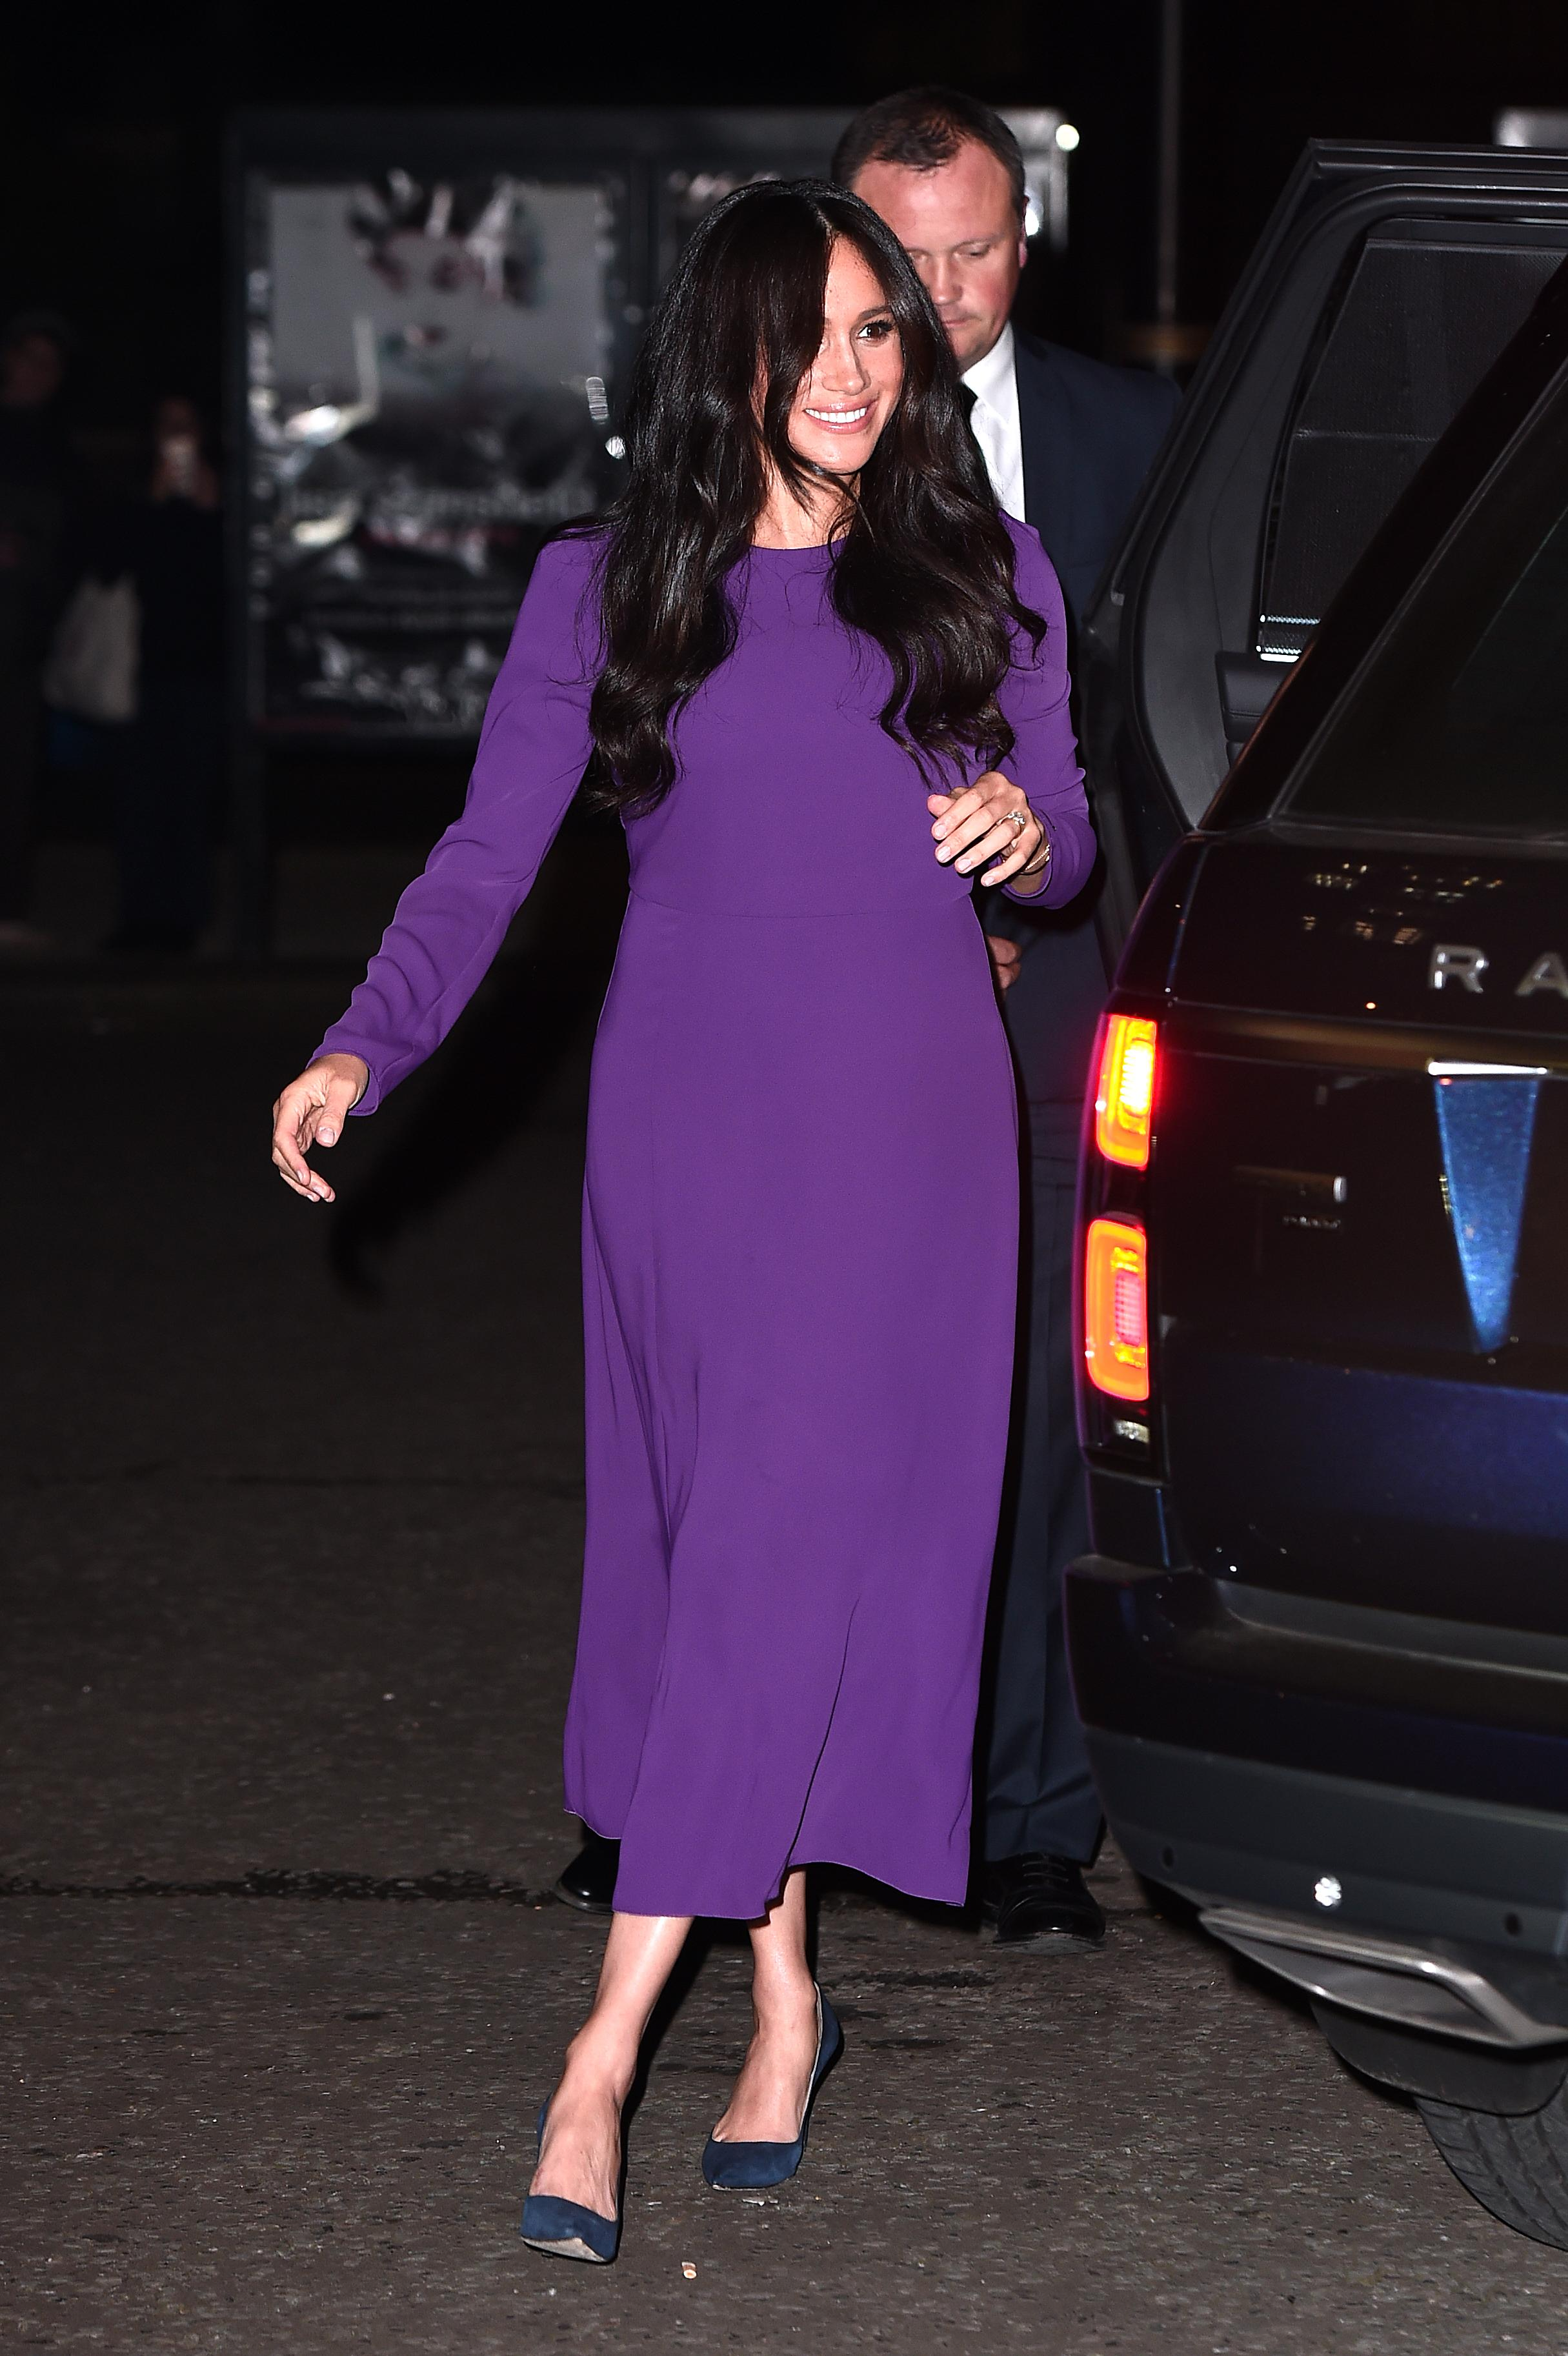 Meghan Markle in purple dress